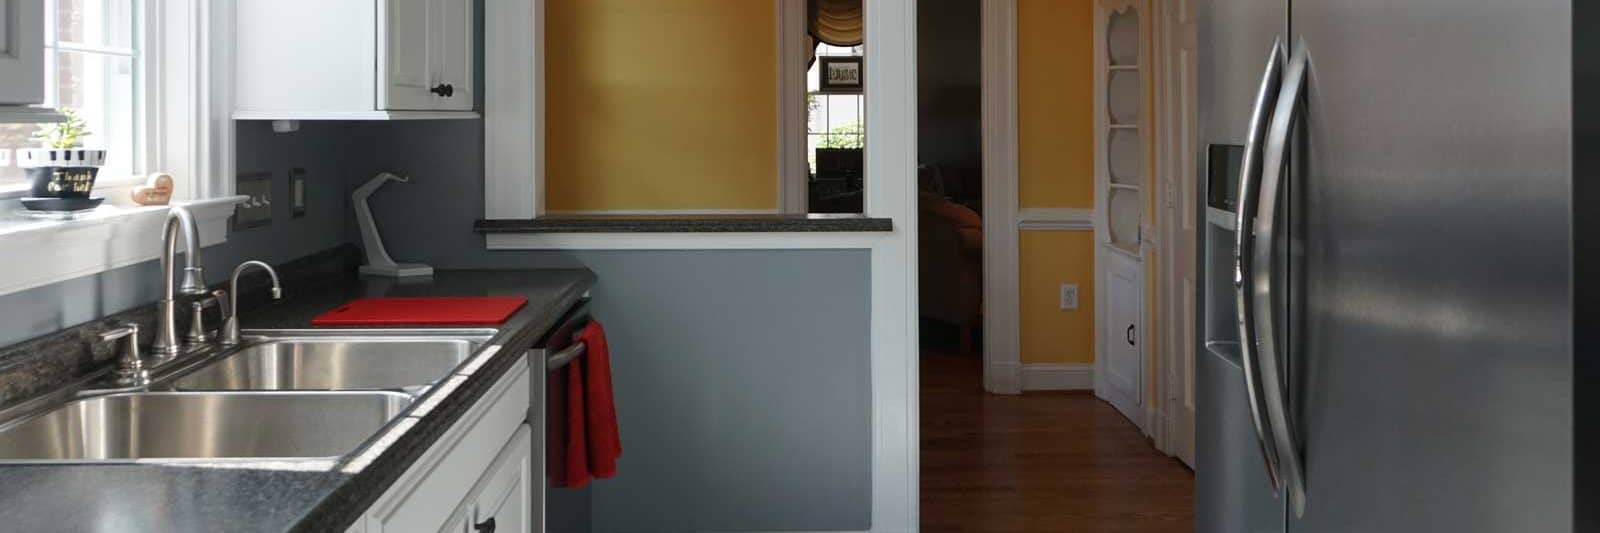 Convenient pass-through wall to breakfast nook